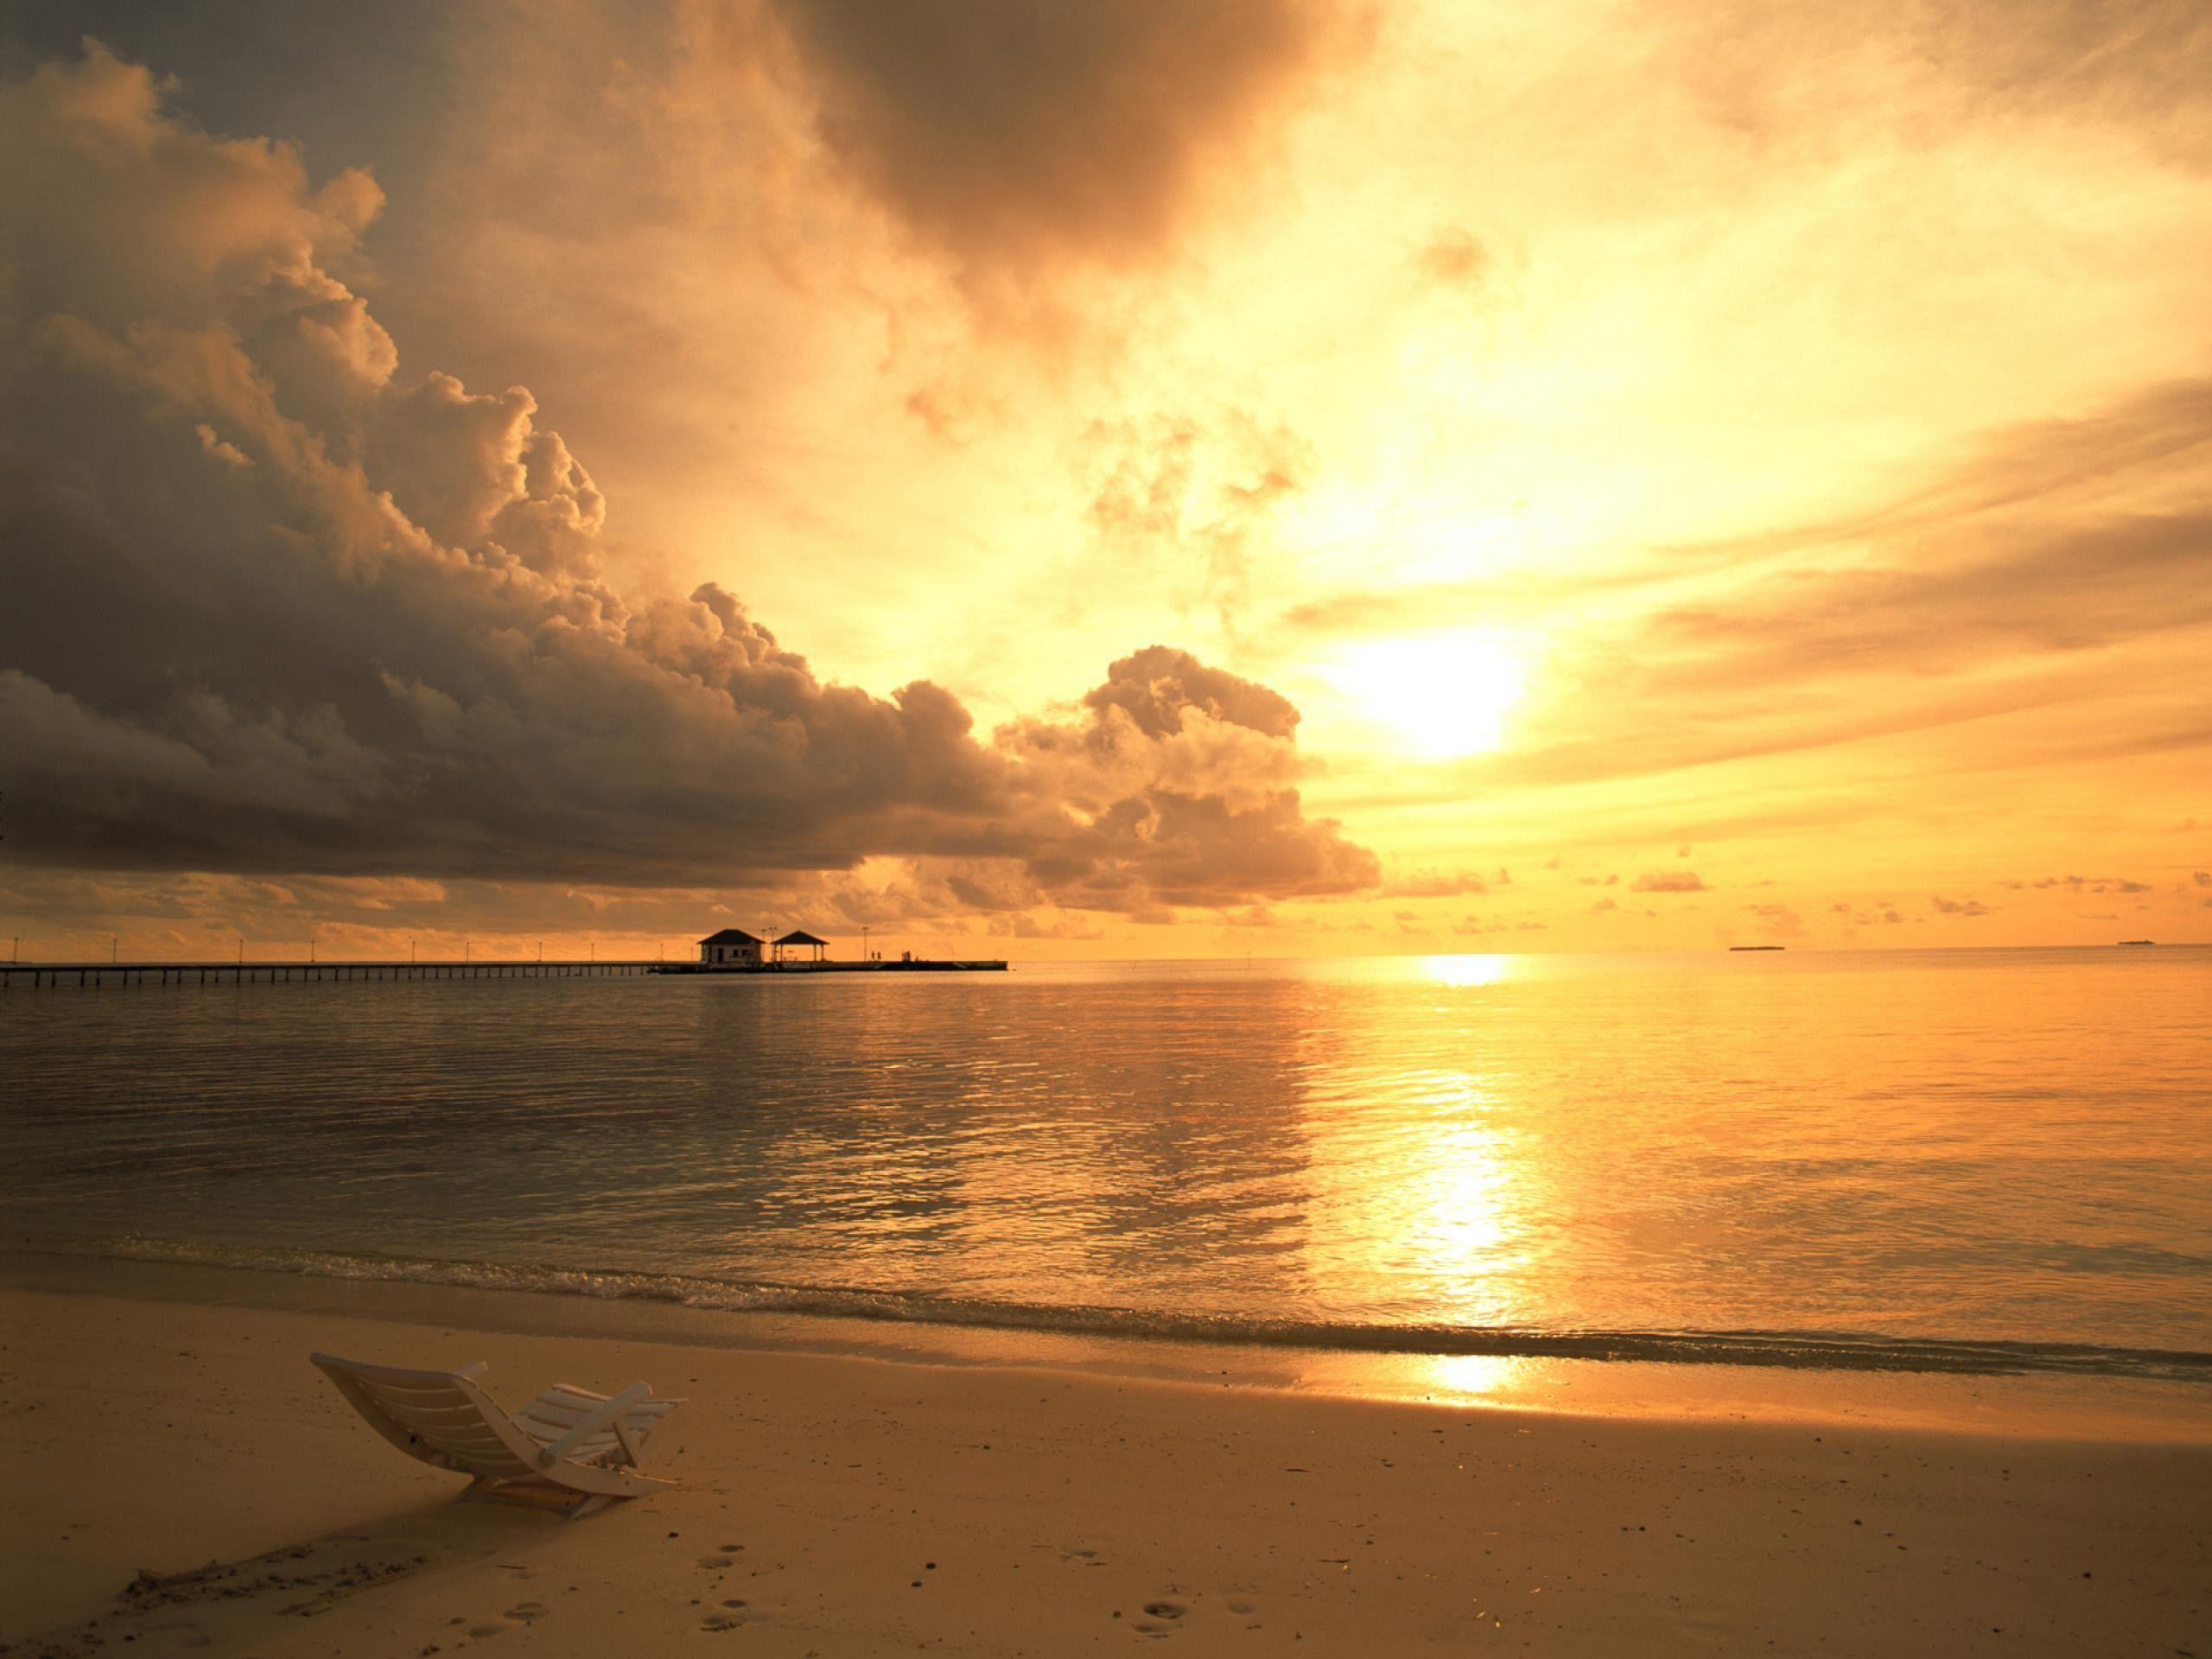 Tropical Beach Sunrise Wallpapers Image 6 HD Wallpaperscom